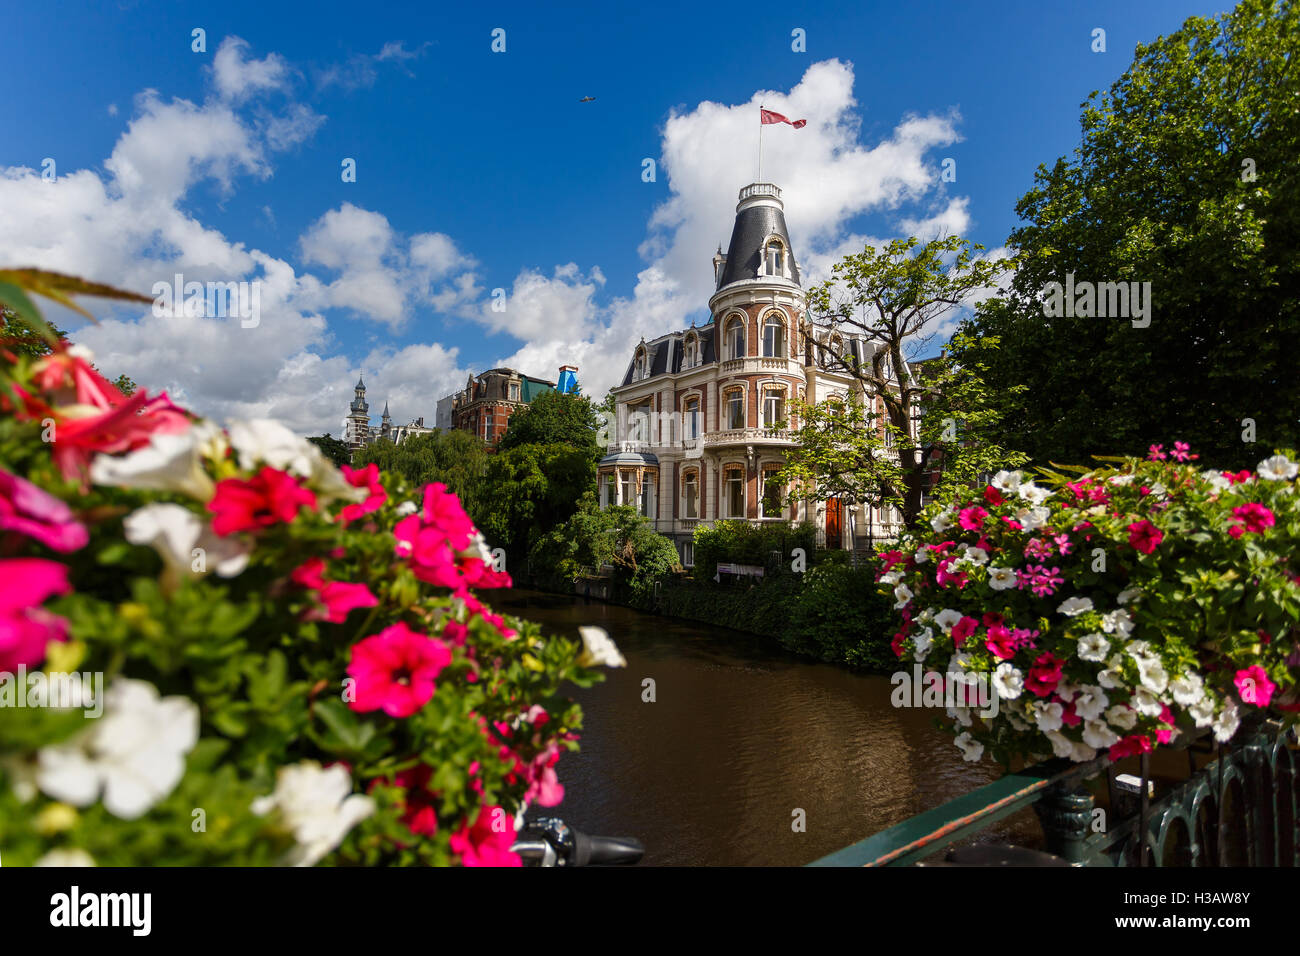 The beautiful house in a flowers frame, Amsterdam Stock Photo ...